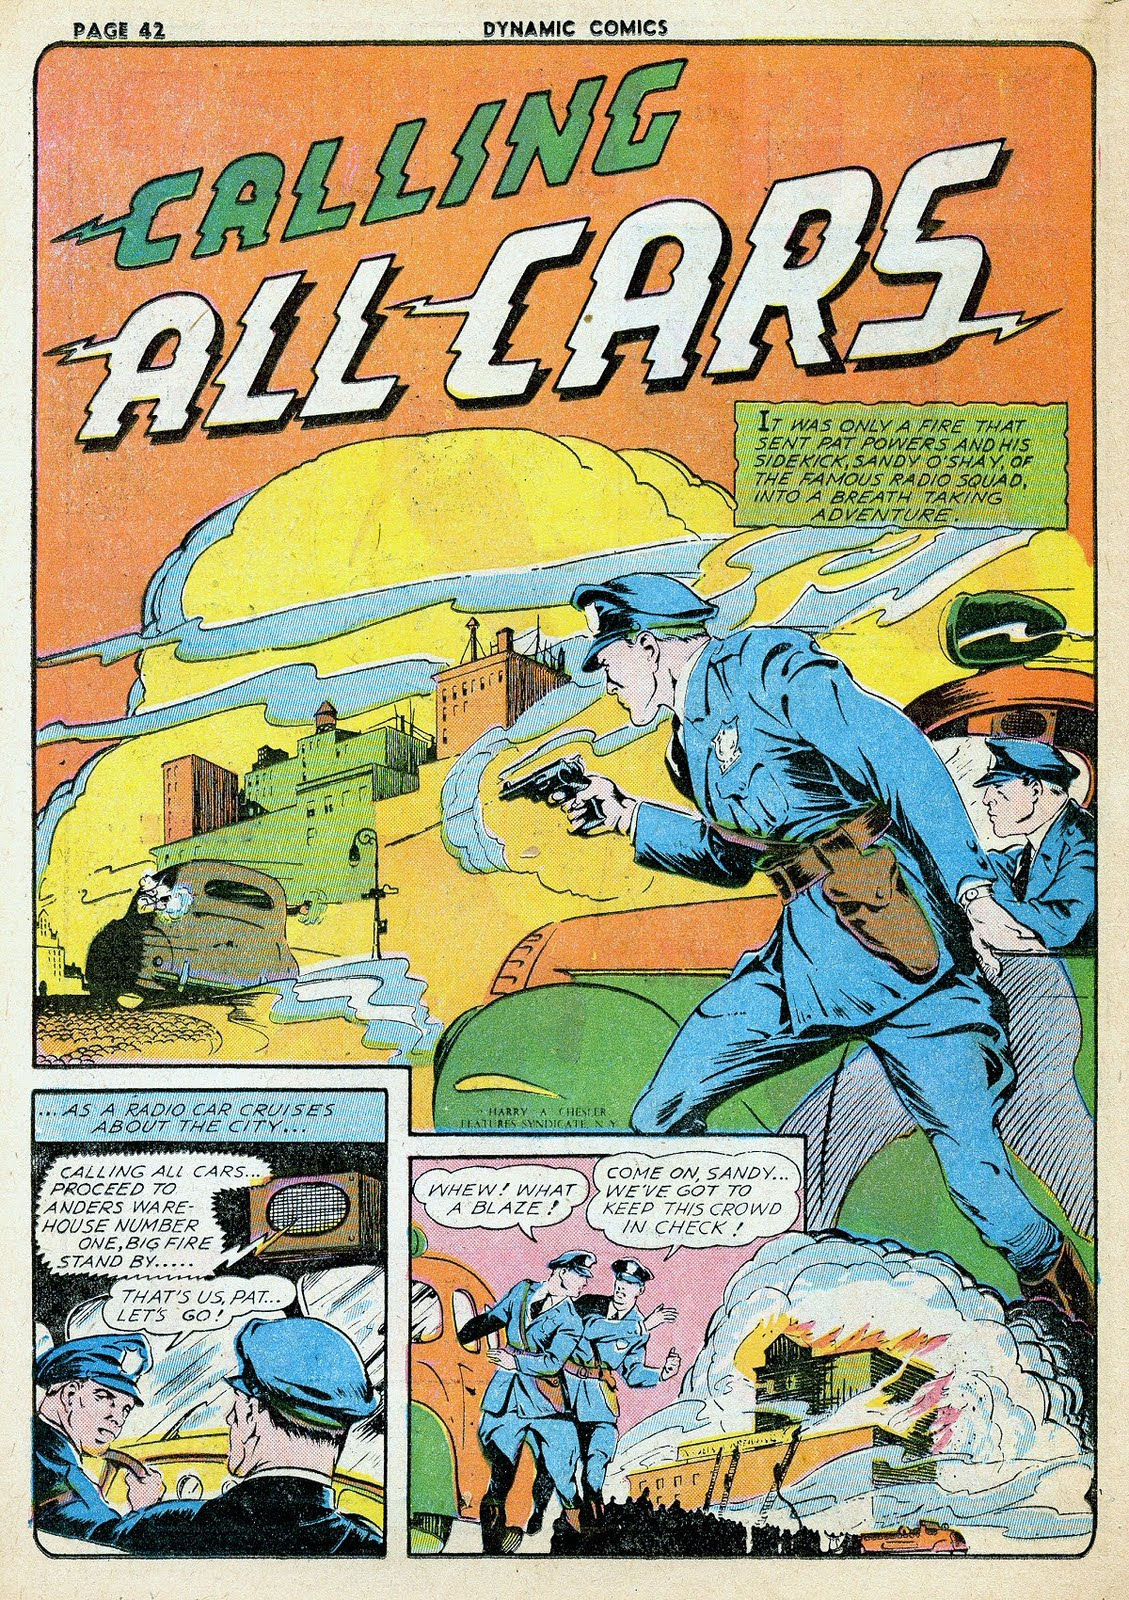 The Comic Book Catacombs: Calling All Cars (Chesler;1941)